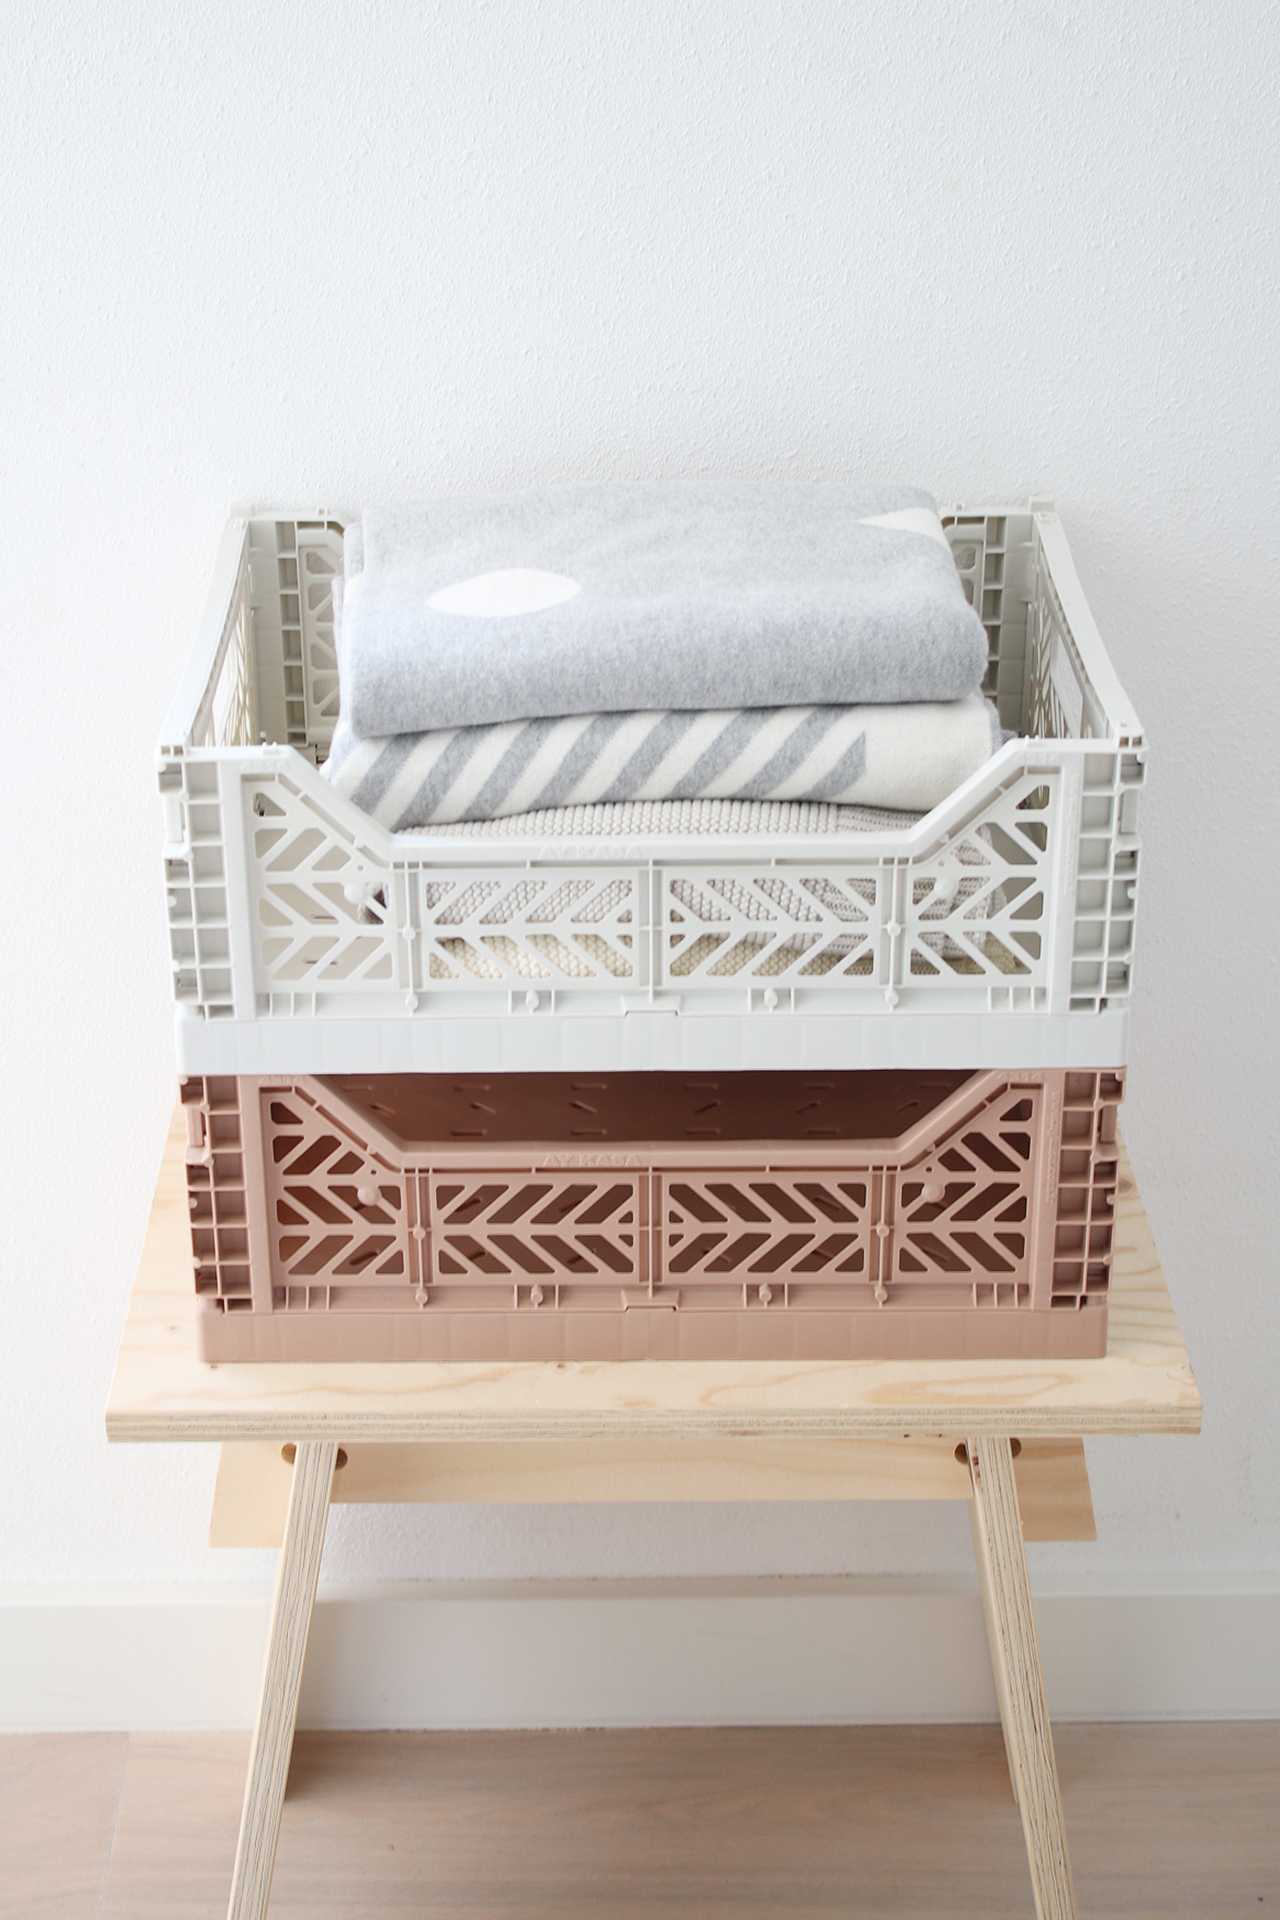 Folding Crate: Midi Stackable Storage Crate - Cream Folding Crates - Bon Tot